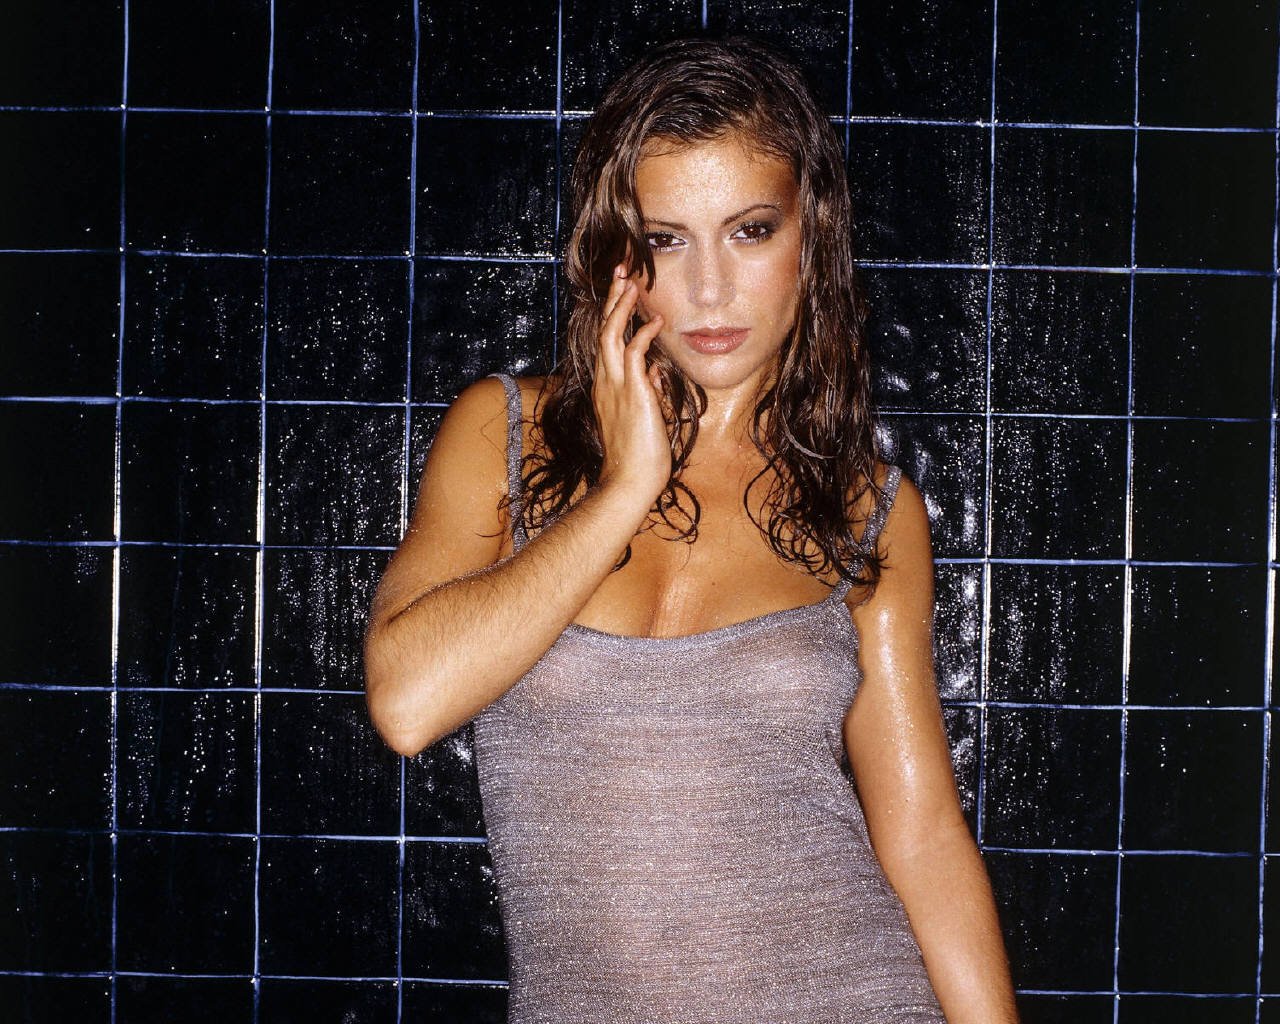 Alyssa Milano wallpaper, alyssa milano red carpet, alyssa milano news, alyssa milano wallpaper widescreen-41